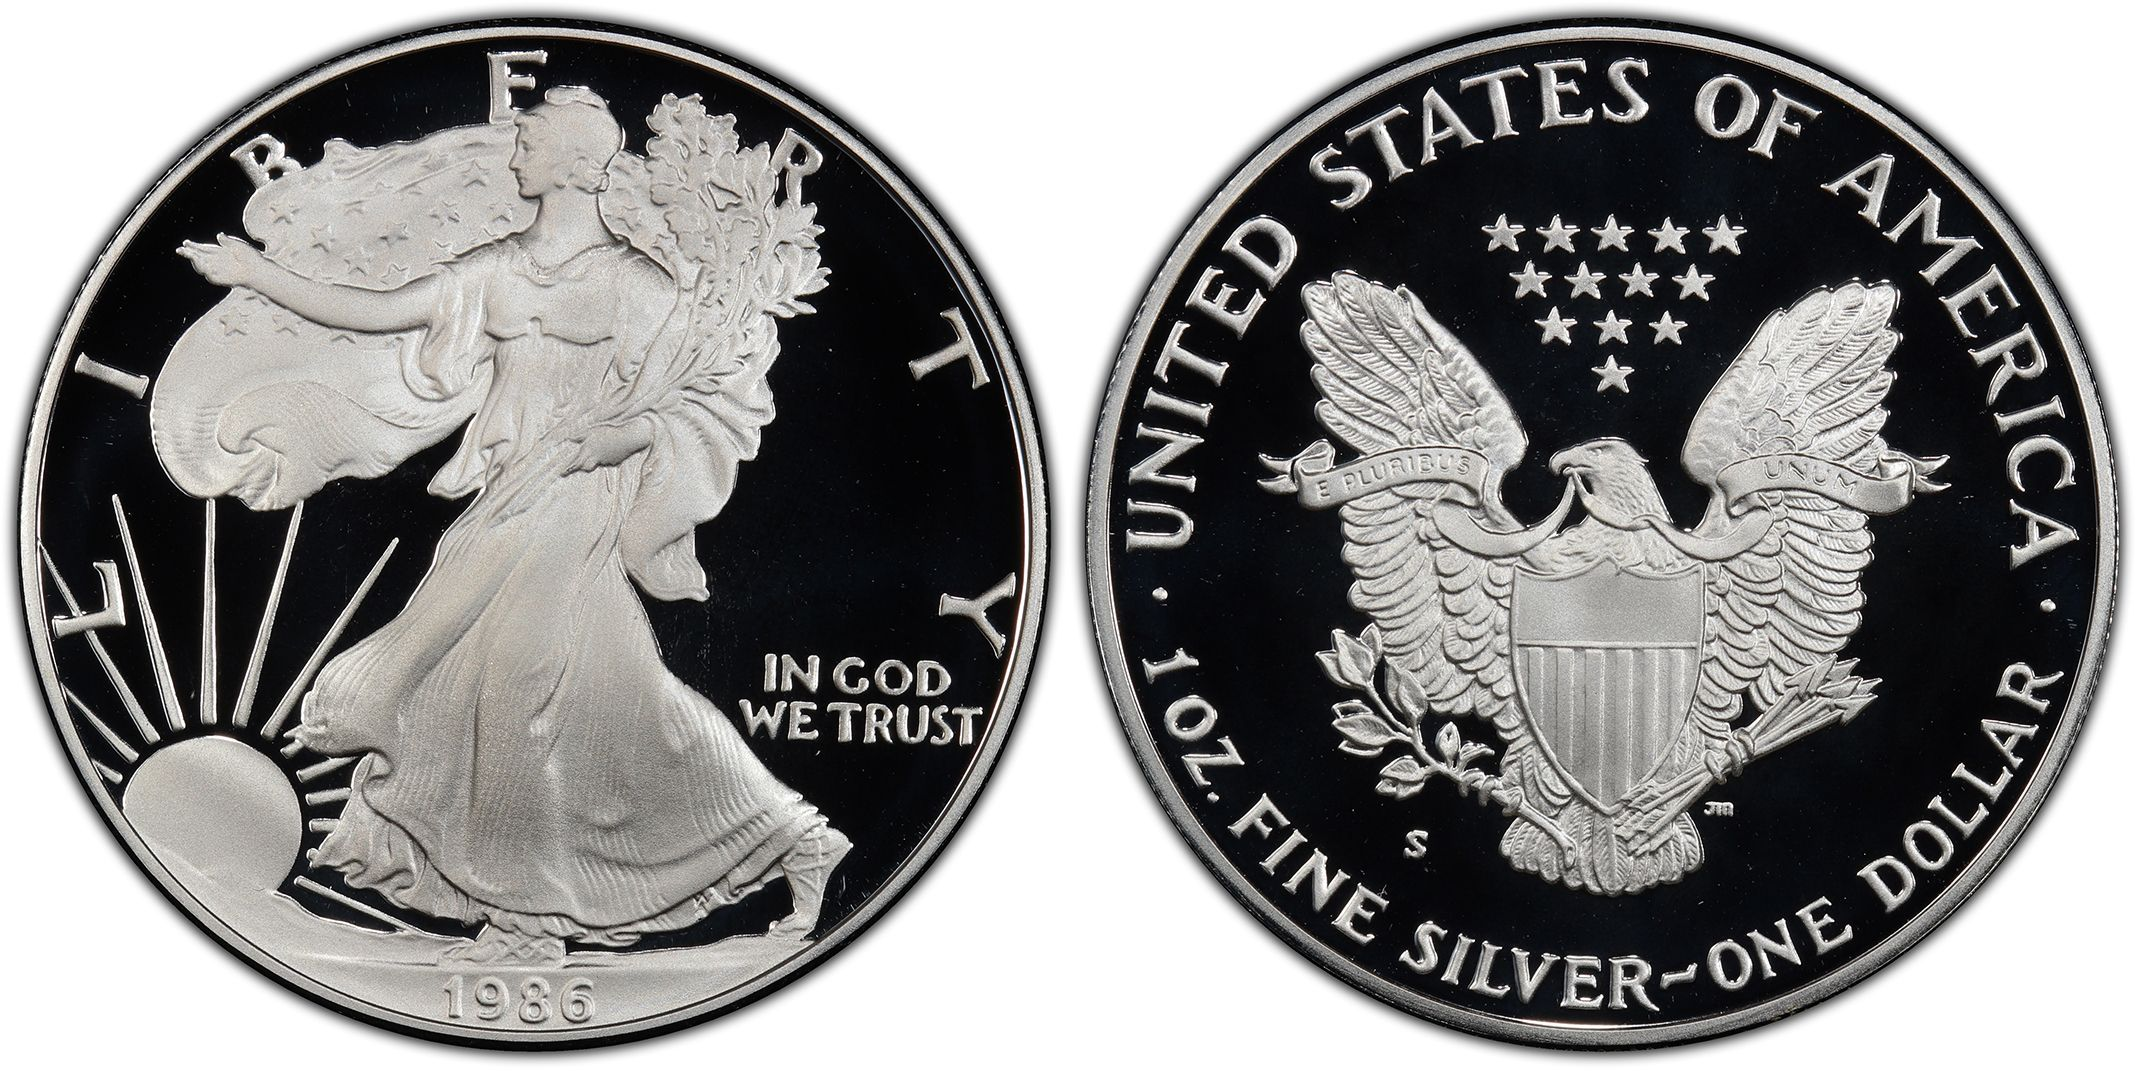 Rainbow Toned Silver American Eagle Coin 1 Troy Ounce Fine Silver High Grade Artistic Toning All Colors Eagle Coin Silver Eagle Coins American Silver Eagle